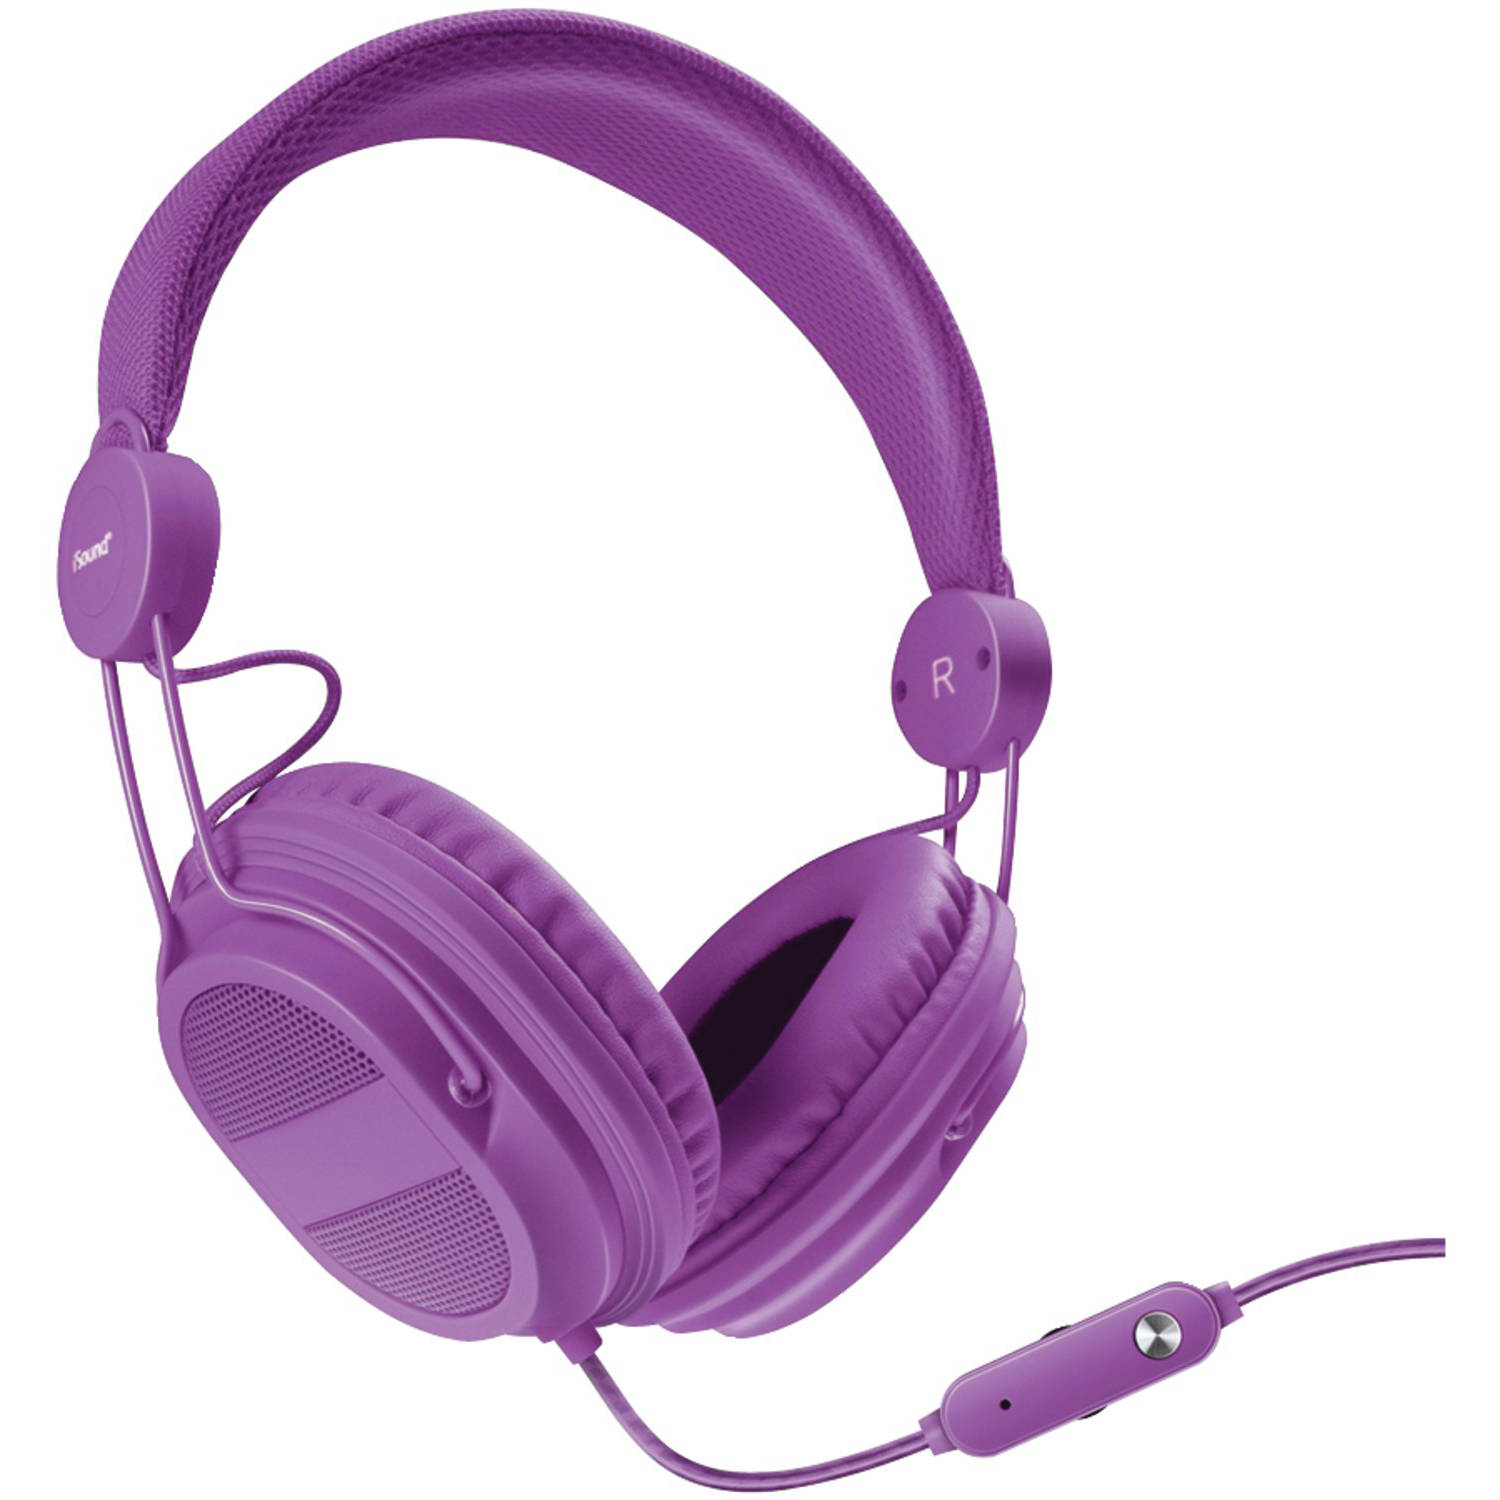 dreamGEAR DGHP-5540 Hm-310 Kid-friendly Headphones with Microphone, Purple